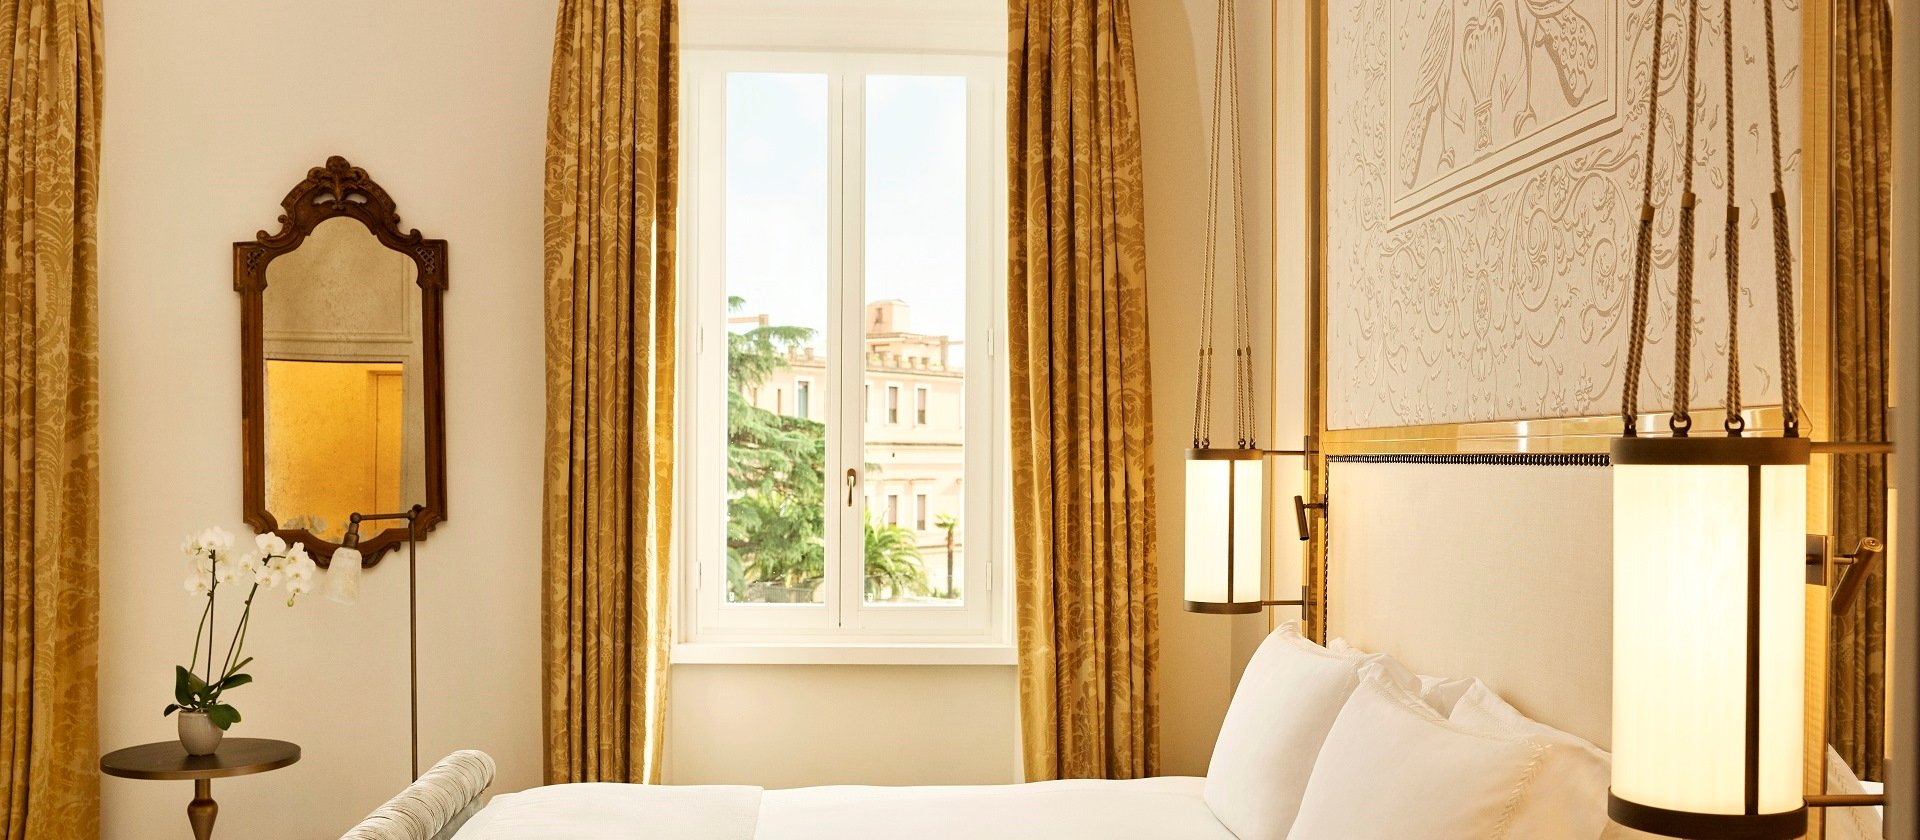 Inside a bedroom at Hotel Eden with views of Rome